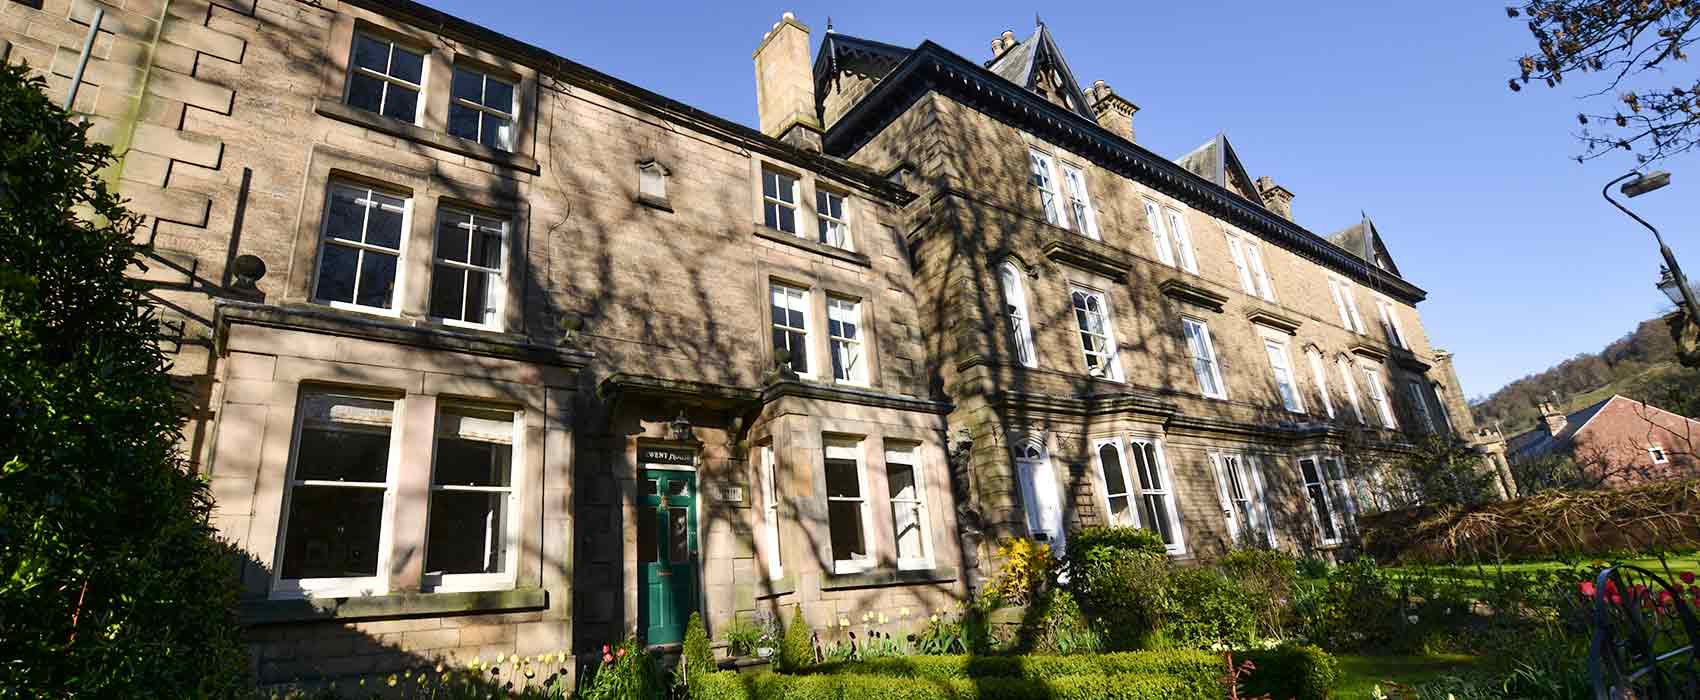 derwent-house-and-Glendon-bed-and-breakfast